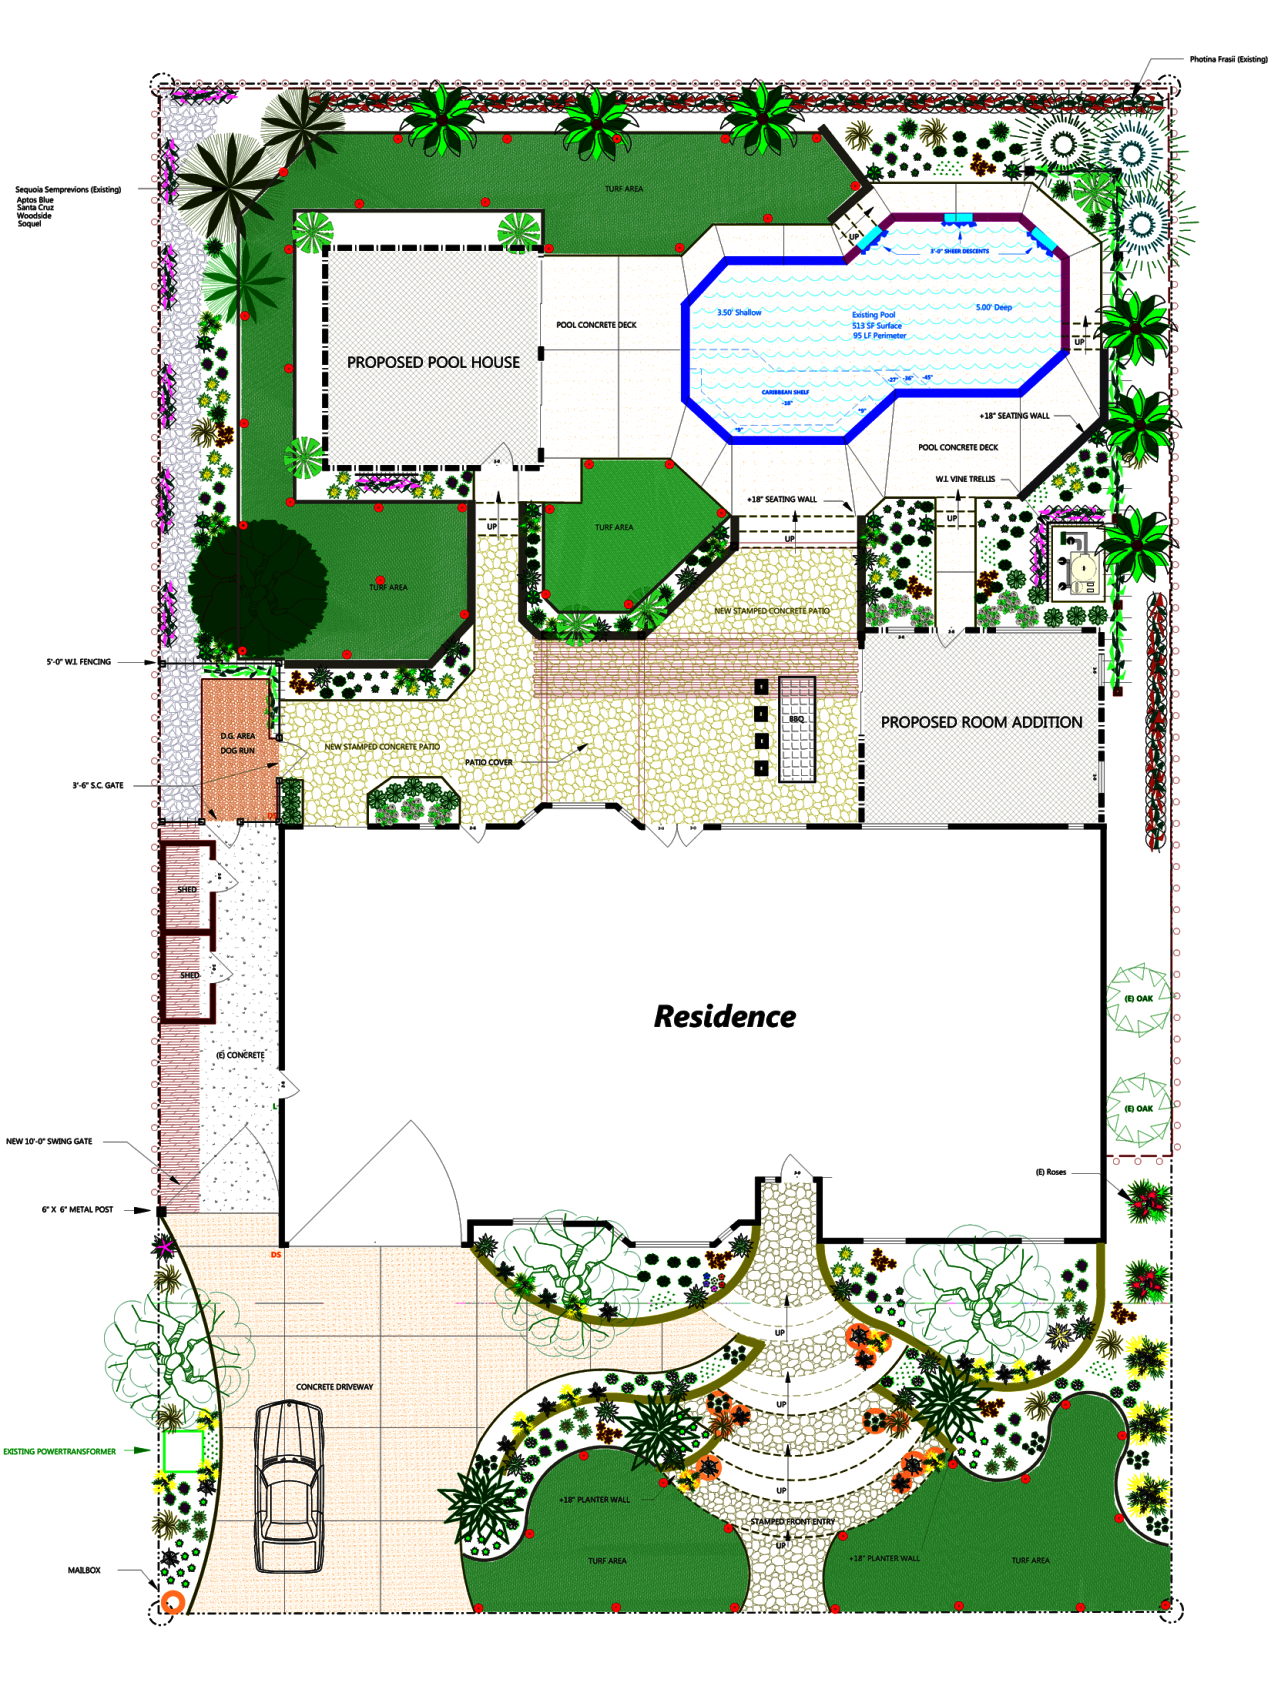 Residential Landscape Architecture Design Process For The Private Residence Pdf Free Download